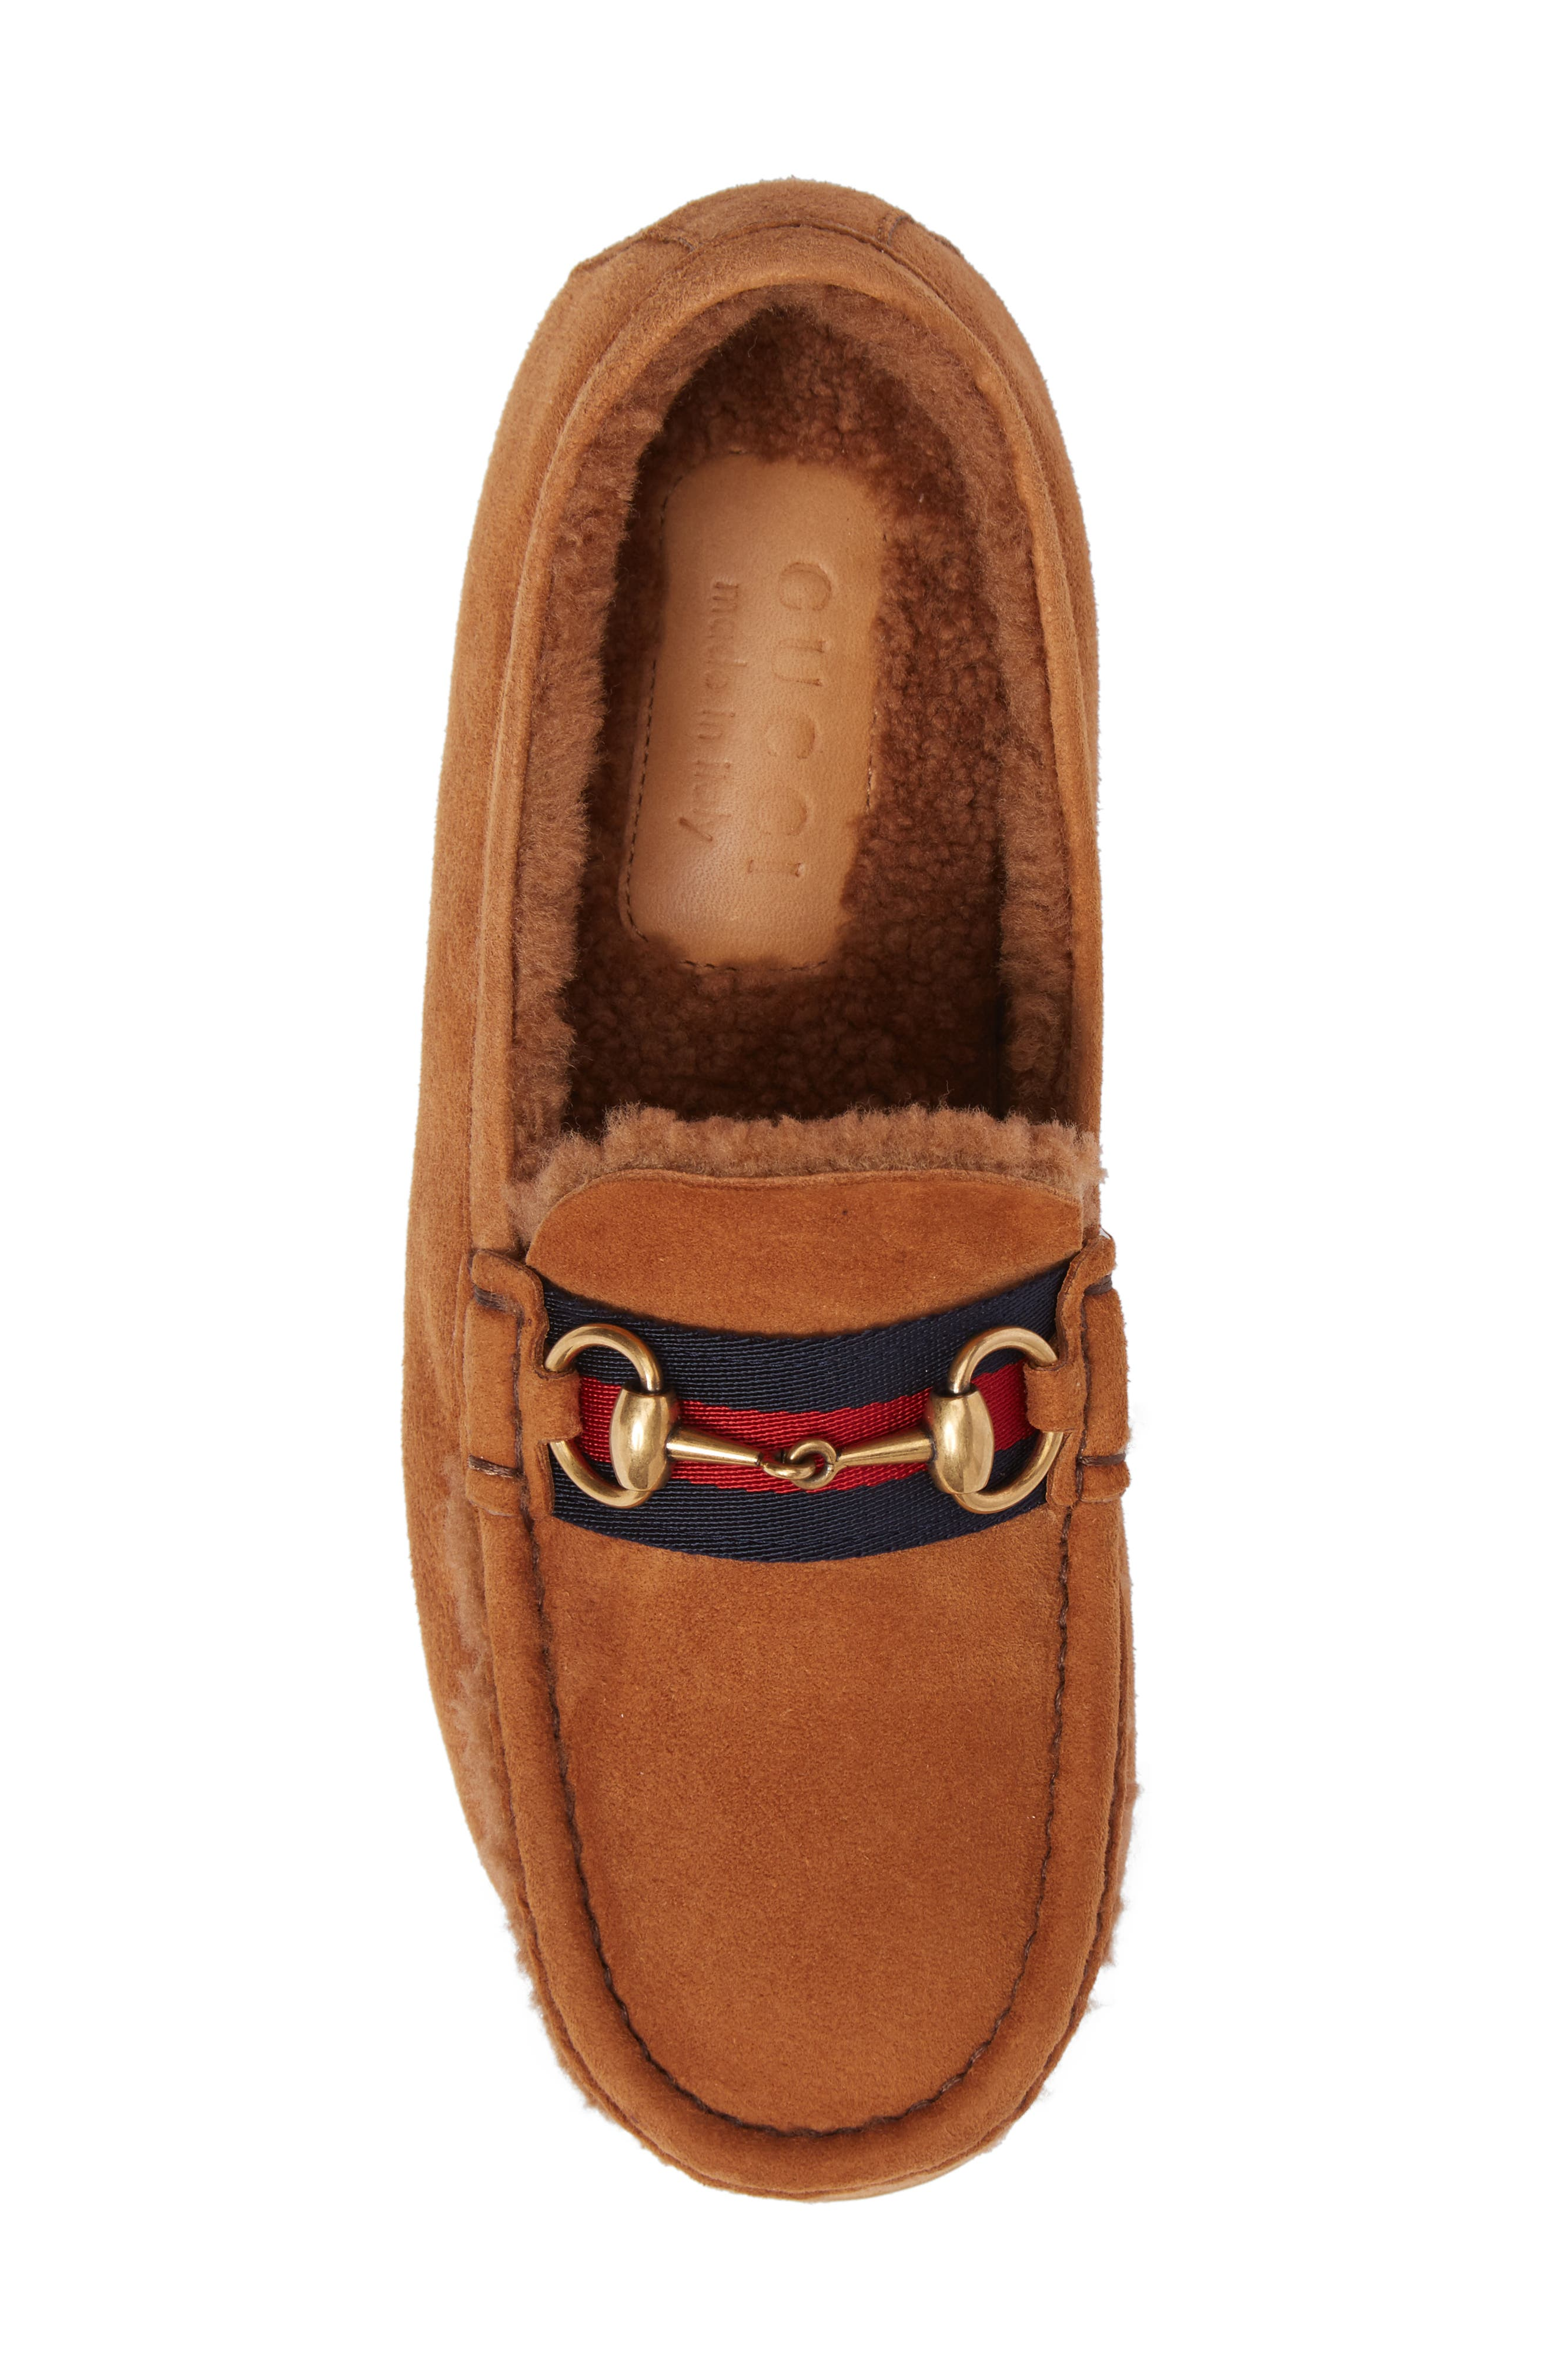 Driving Shoe with Genuine Shearling,                             Alternate thumbnail 5, color,